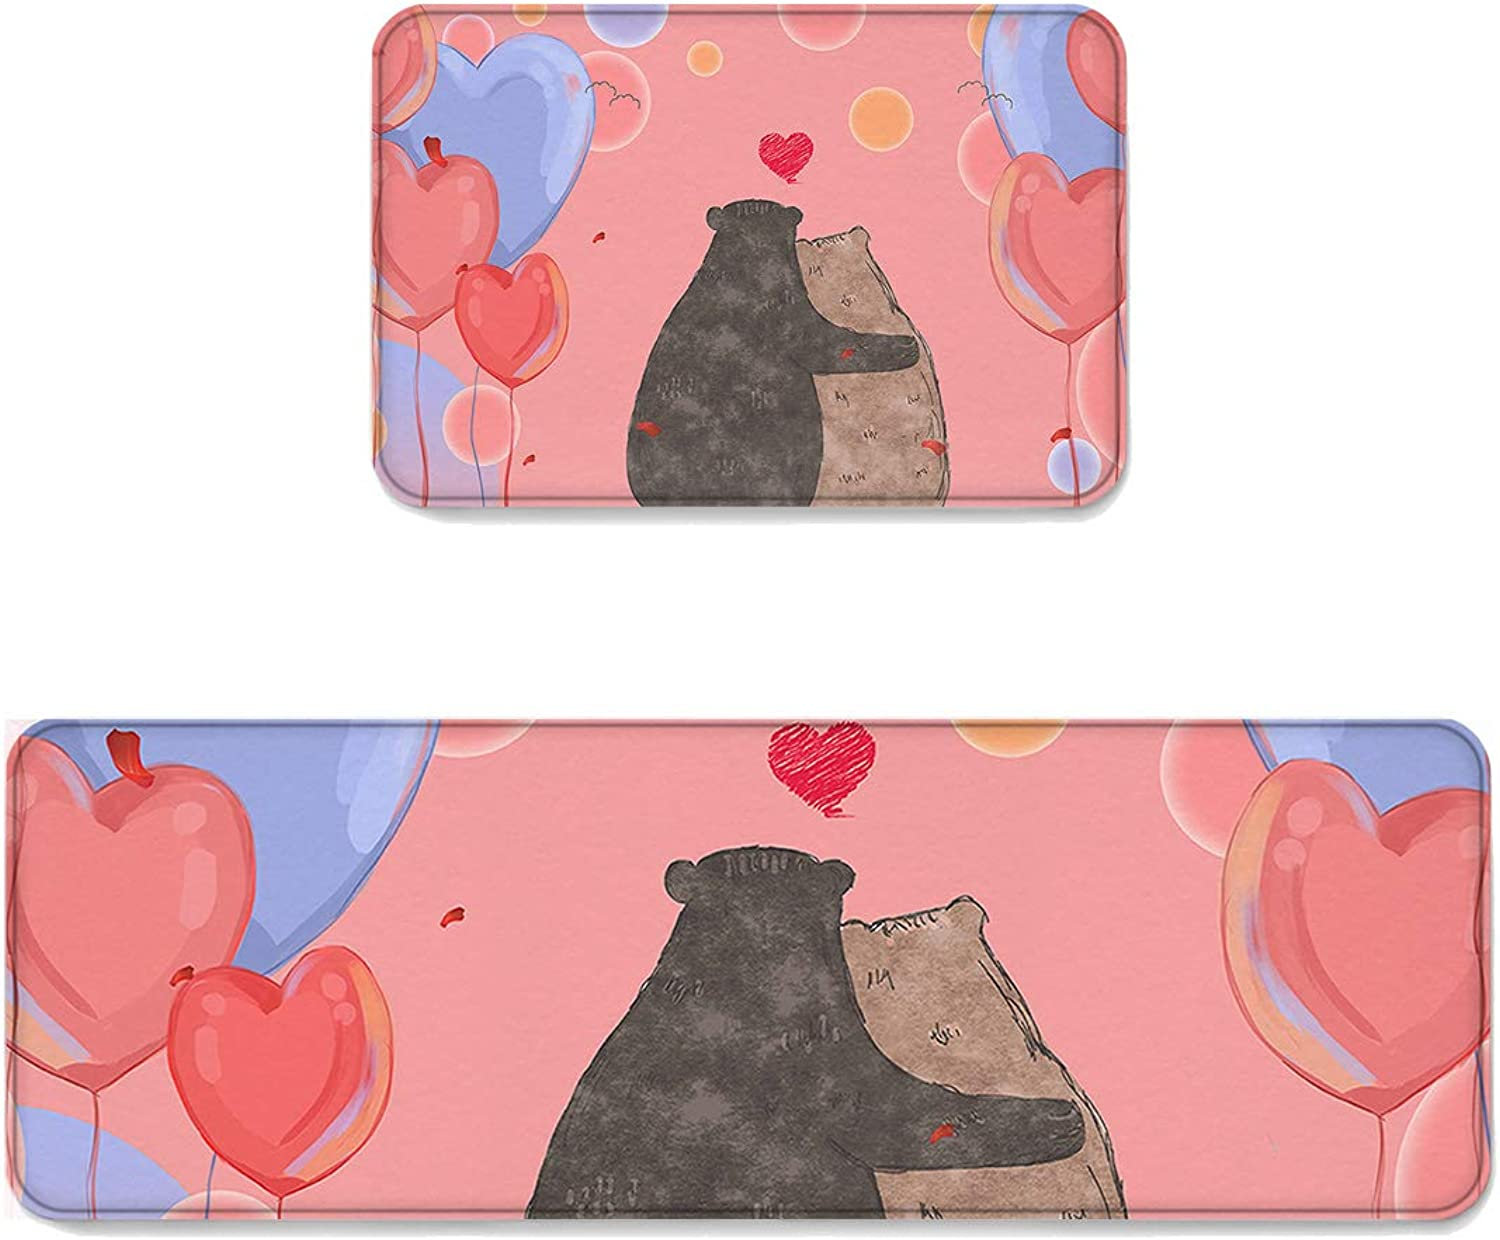 Kitchen Rug Sets 2 Piece Floor Mats Non-Slip Rubber Backing Area Rugs Romantic Couple Bear Pink Series Balloons Doormat Washable Carpet Inside Door Mat Pad Sets (19.7  x 31.5 +19.7  x 47.2 )